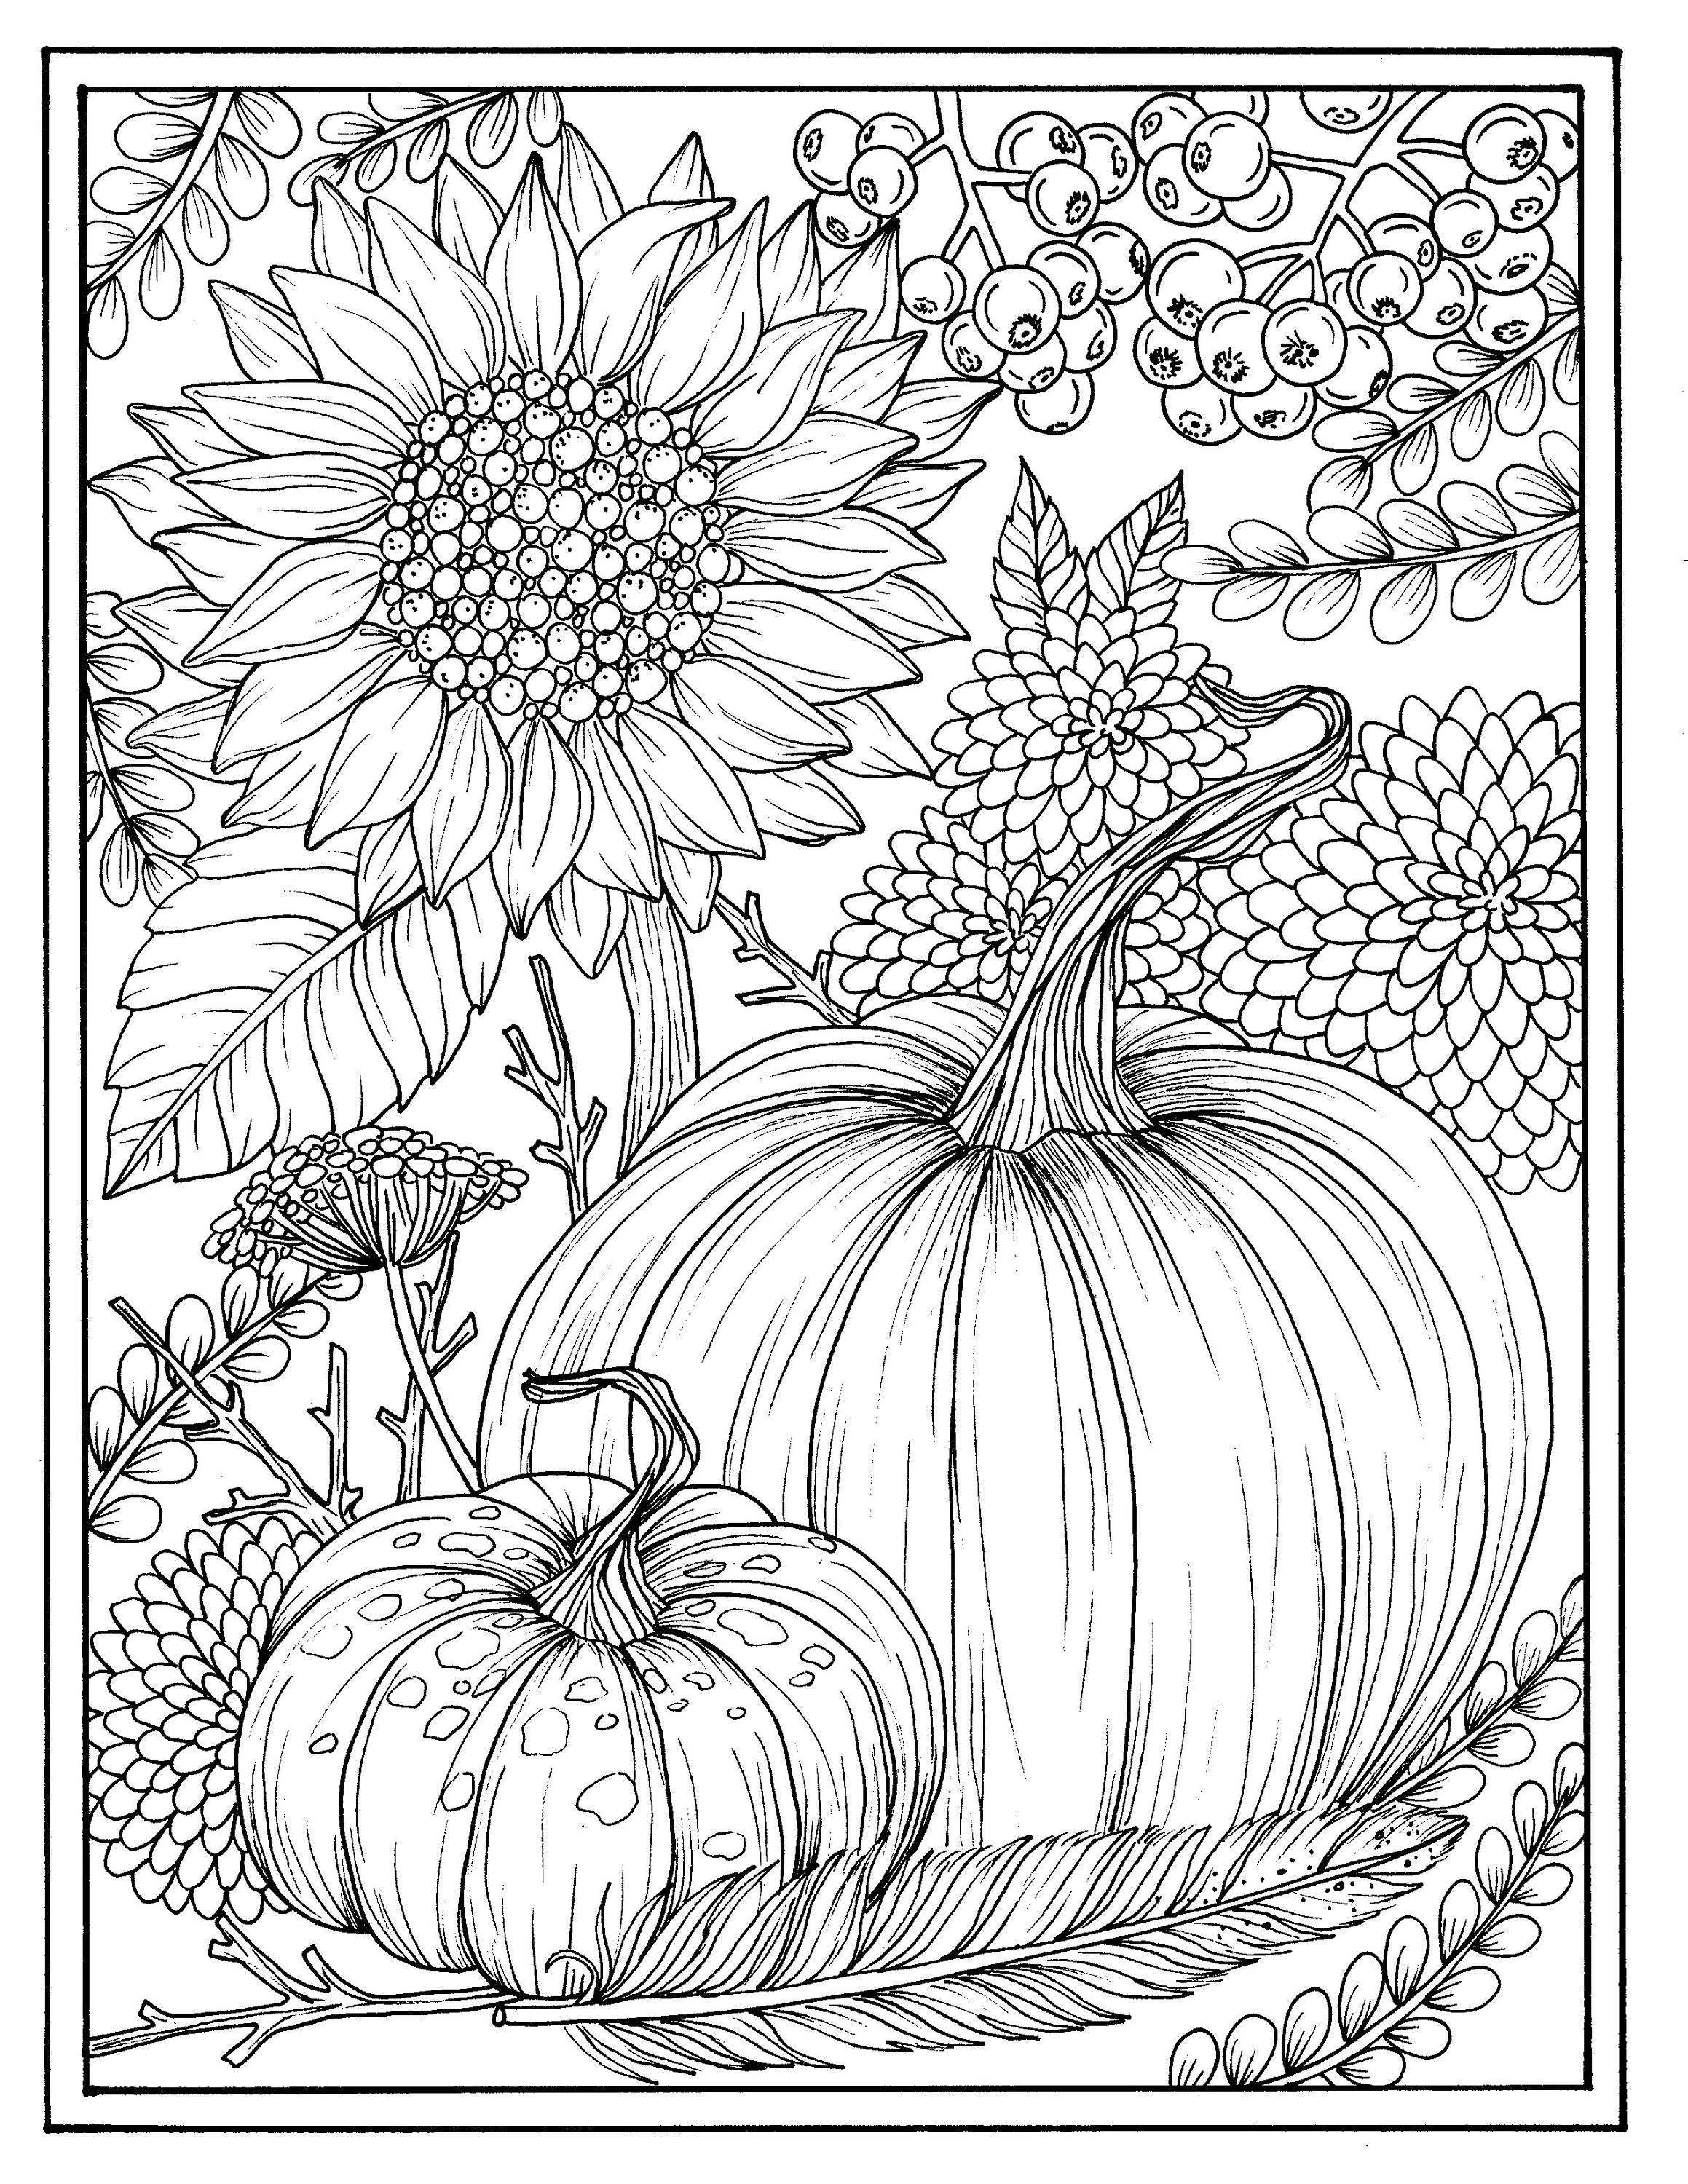 Fall flowers and pumpkins digital coloring page ...